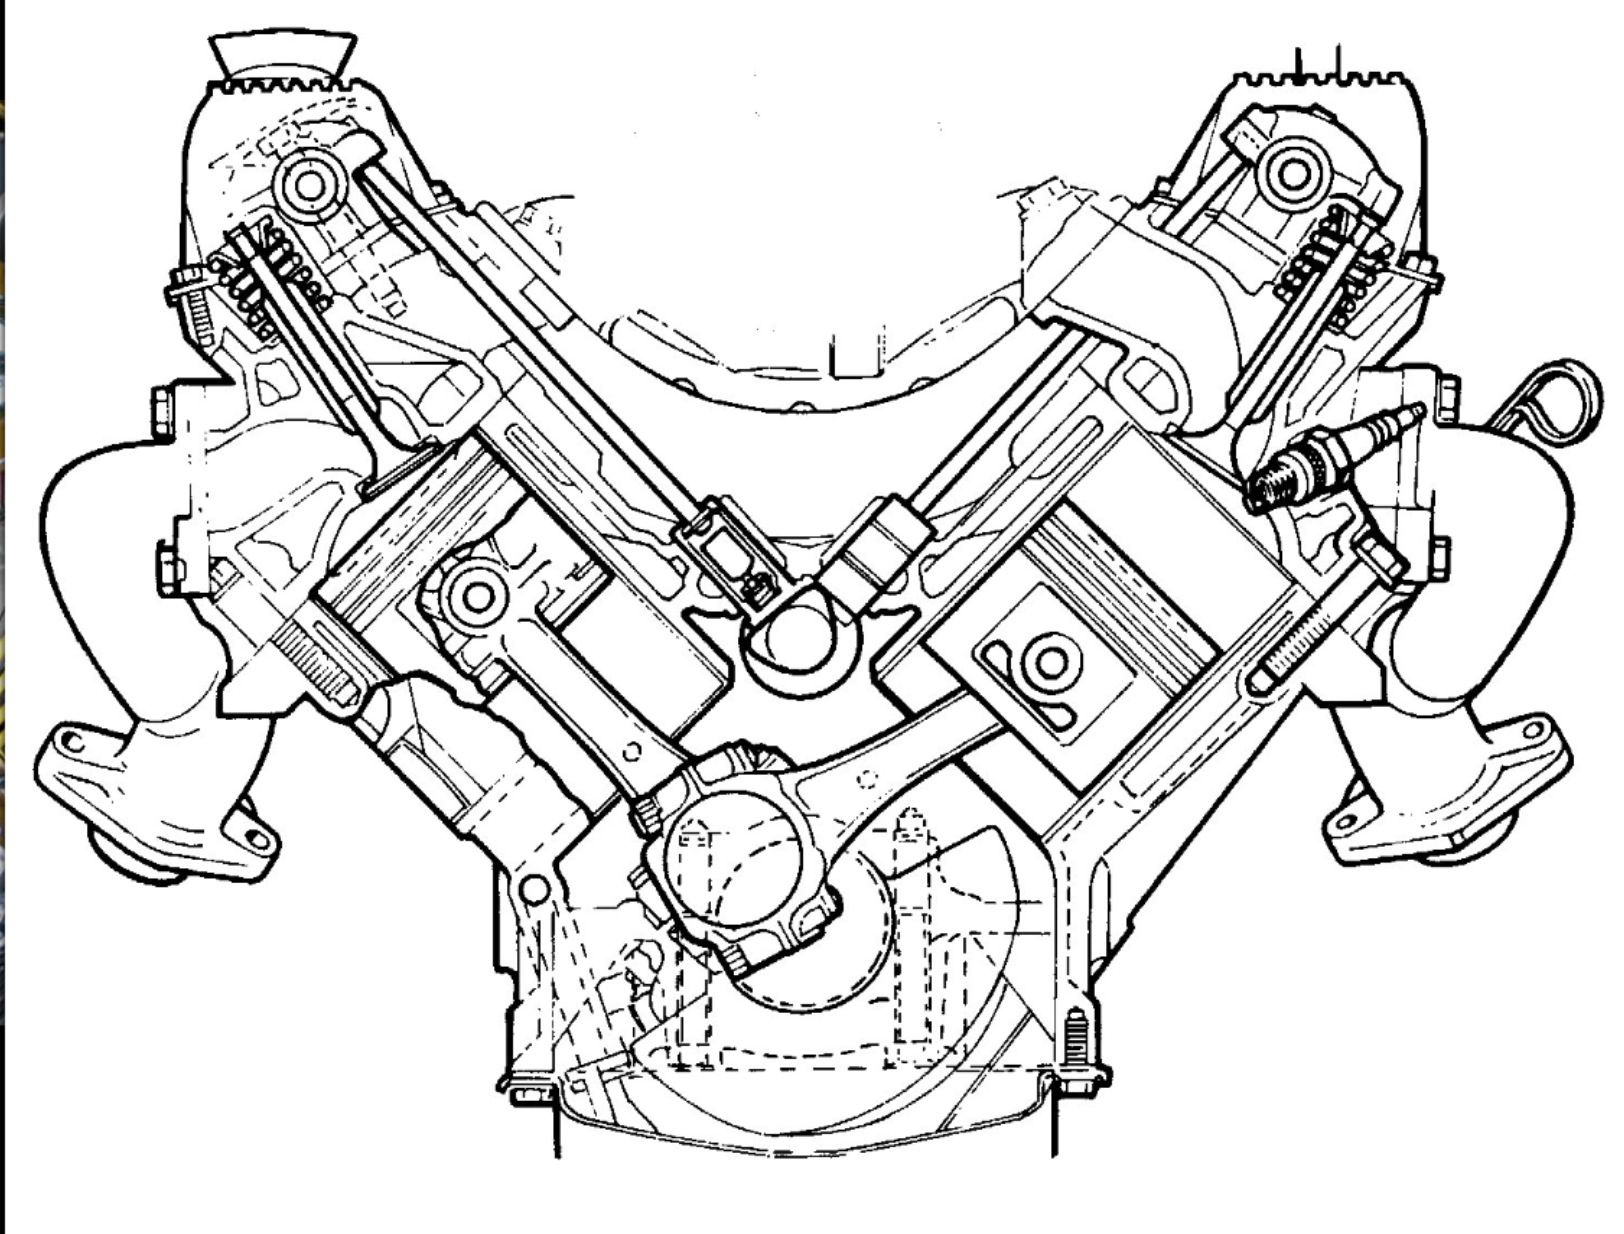 A Sectional View Of The Rover V8 Engine A Masterpiece Of Design